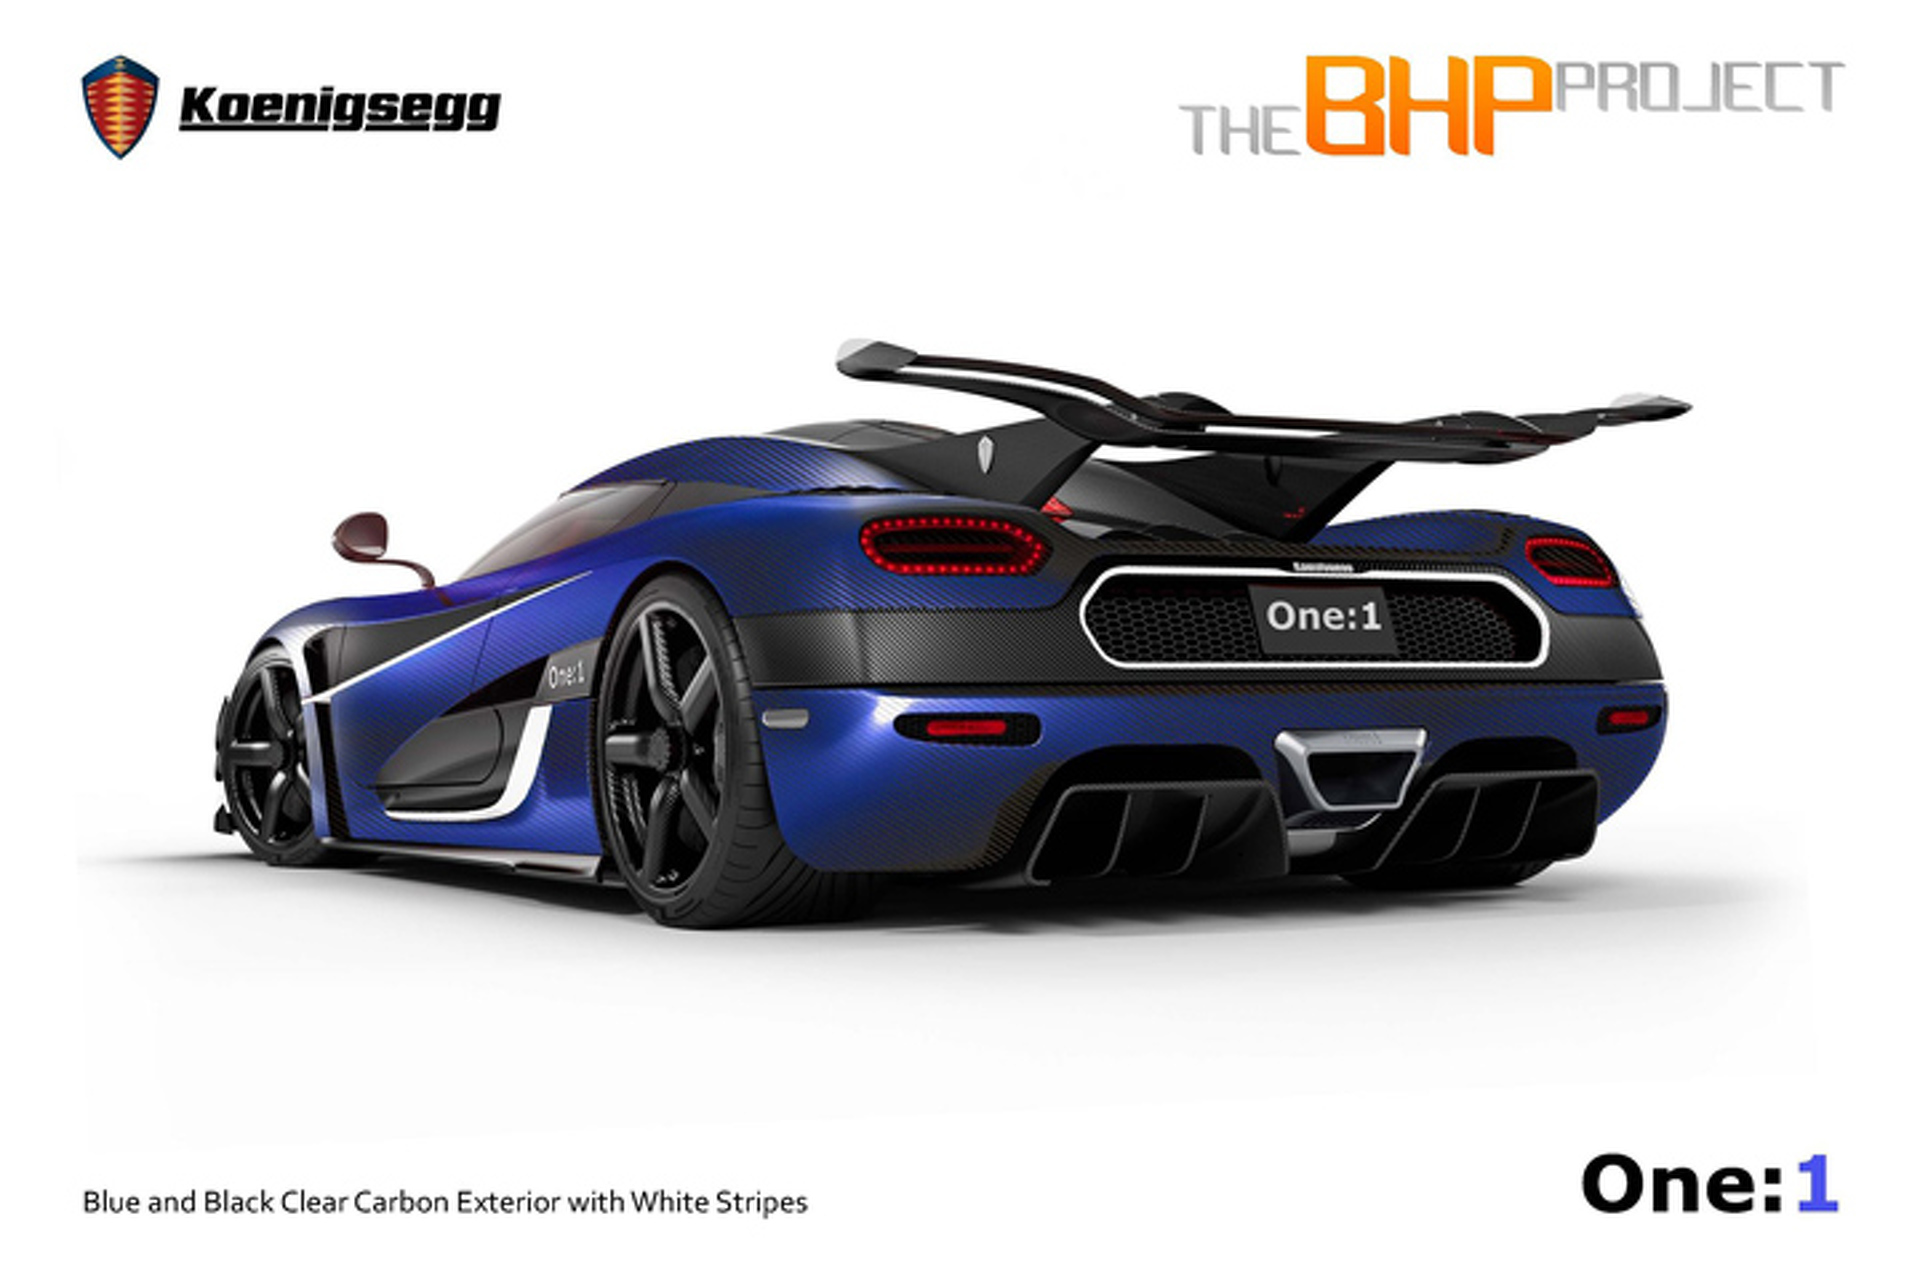 The UK Gets a Dazzling Koenigsegg One:1 Megacar